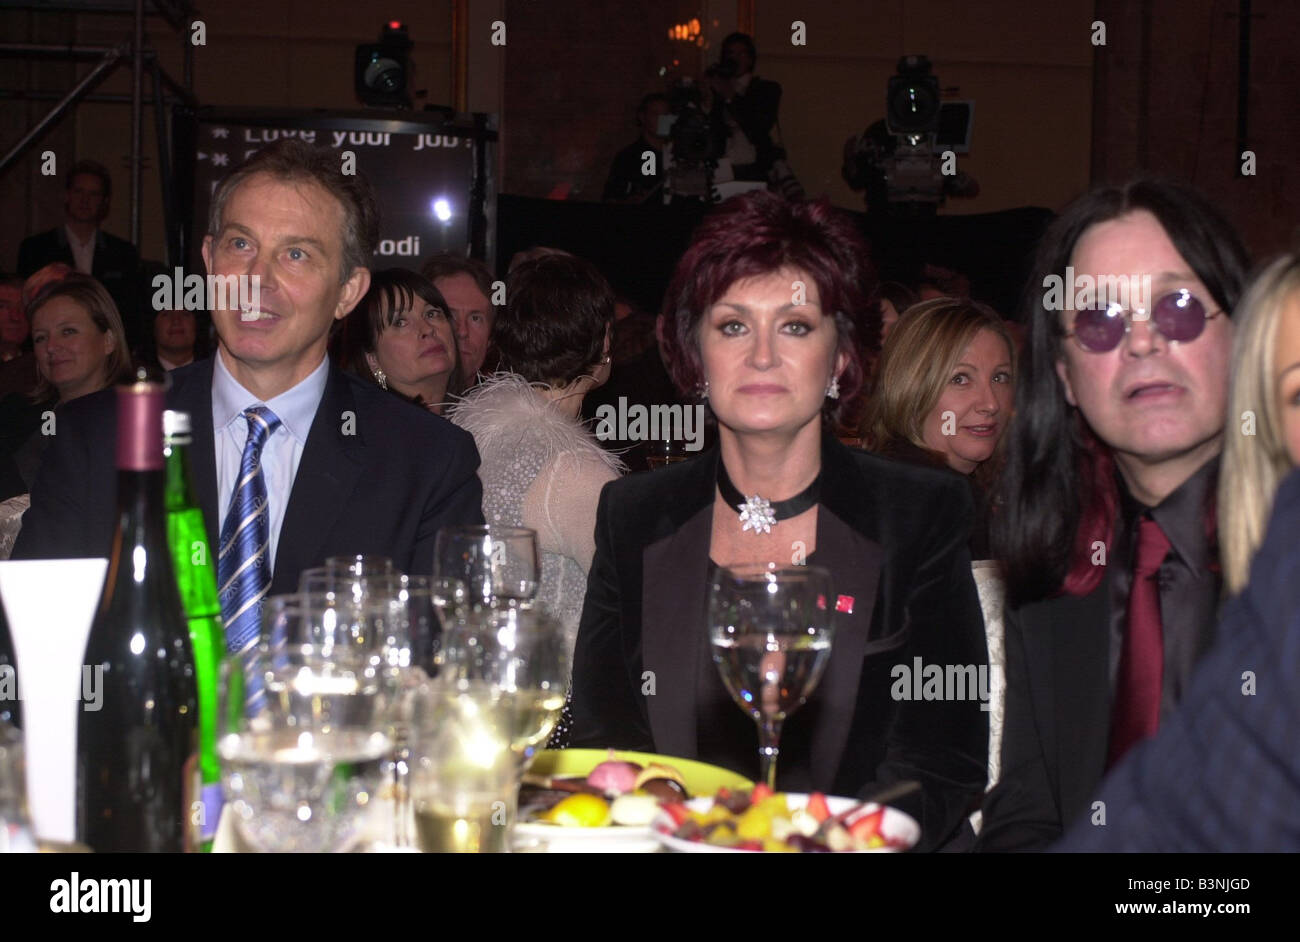 Daily Mirror Pride Of Britain Awards 15th March 2004 Tony Blair Sharon Osbourne and Ozzy Osbourne at the Mirror - Stock Image